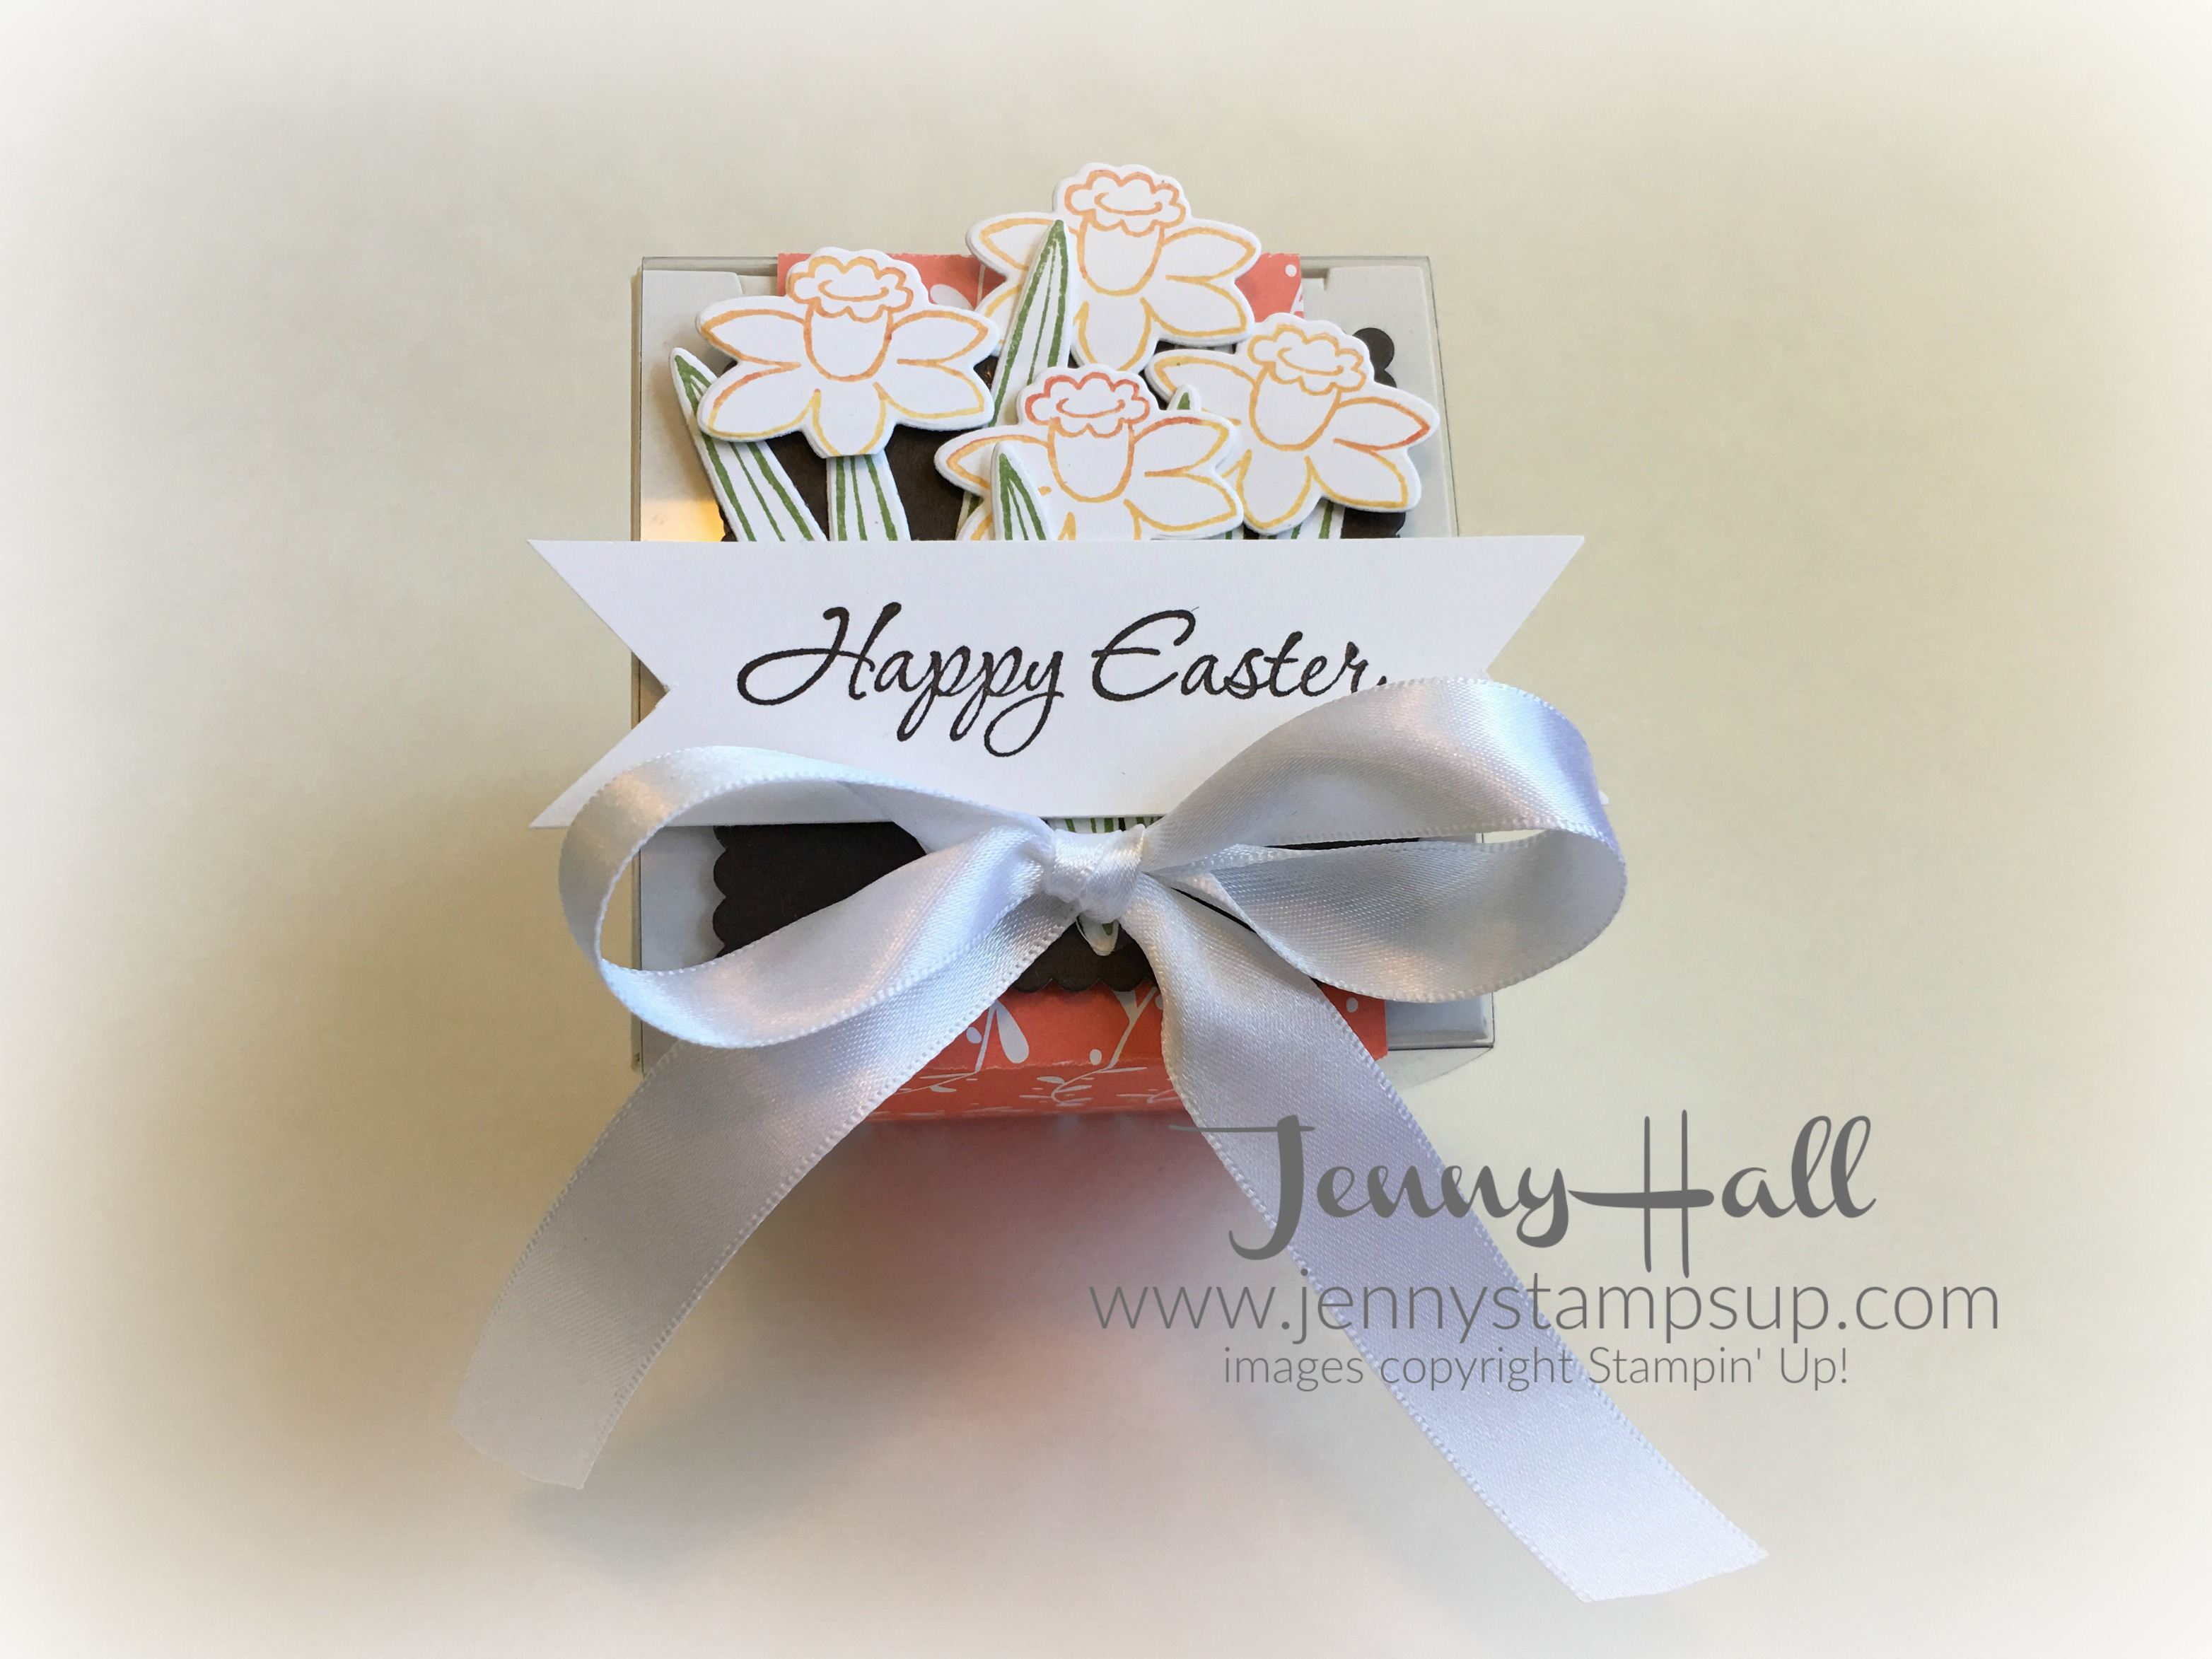 Decorated Easter gift box by Jenny Hall www.jennystampsup.com